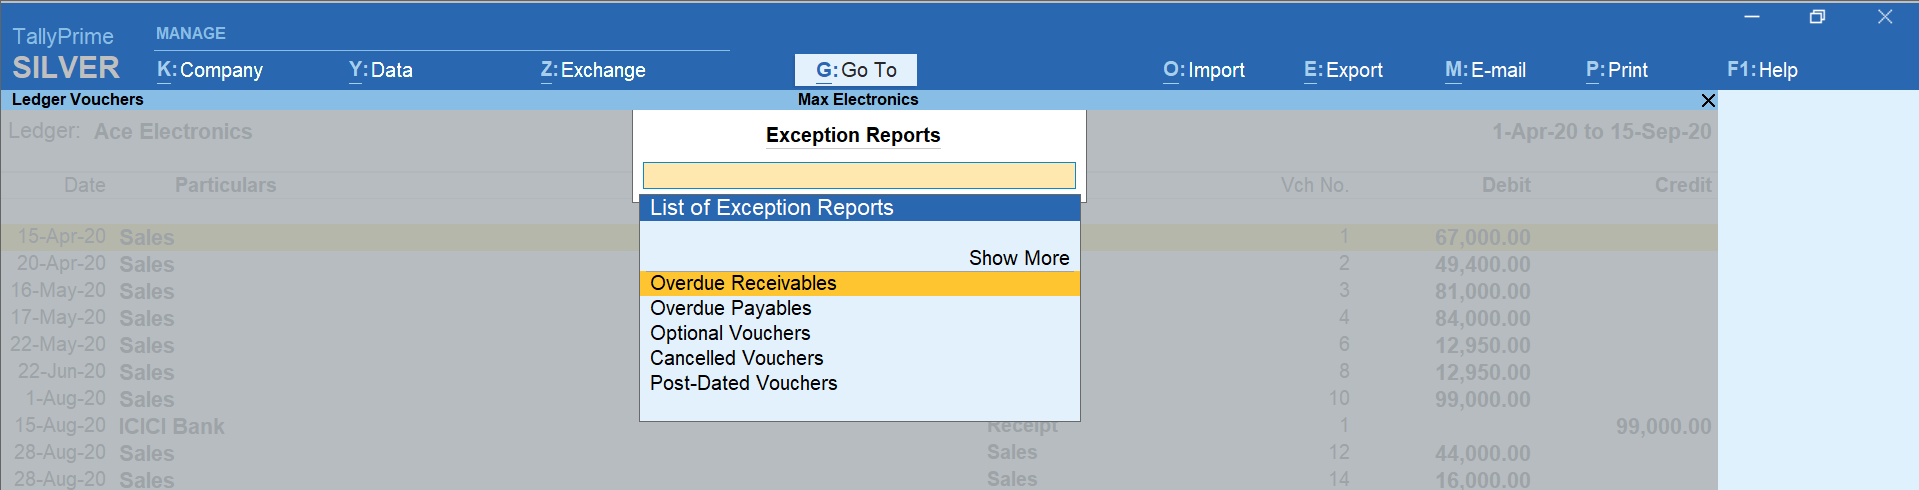 Exception Reports in TallyPrime